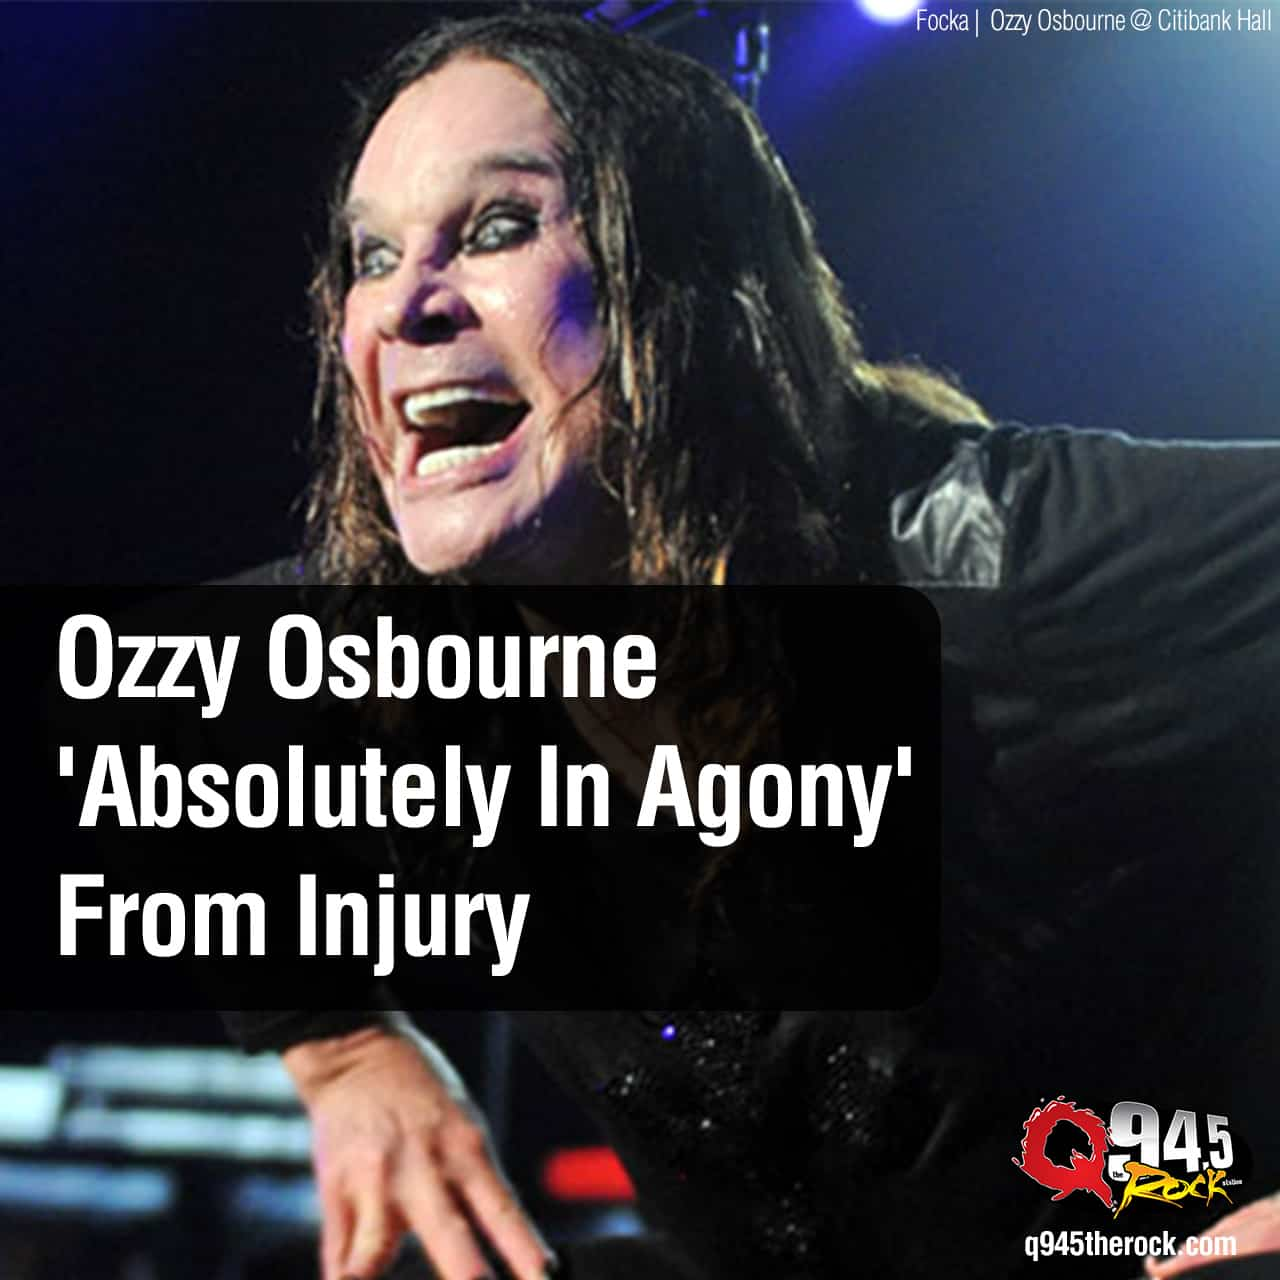 Ozzy Osbourne 'Absolutely In Agony' From Injury